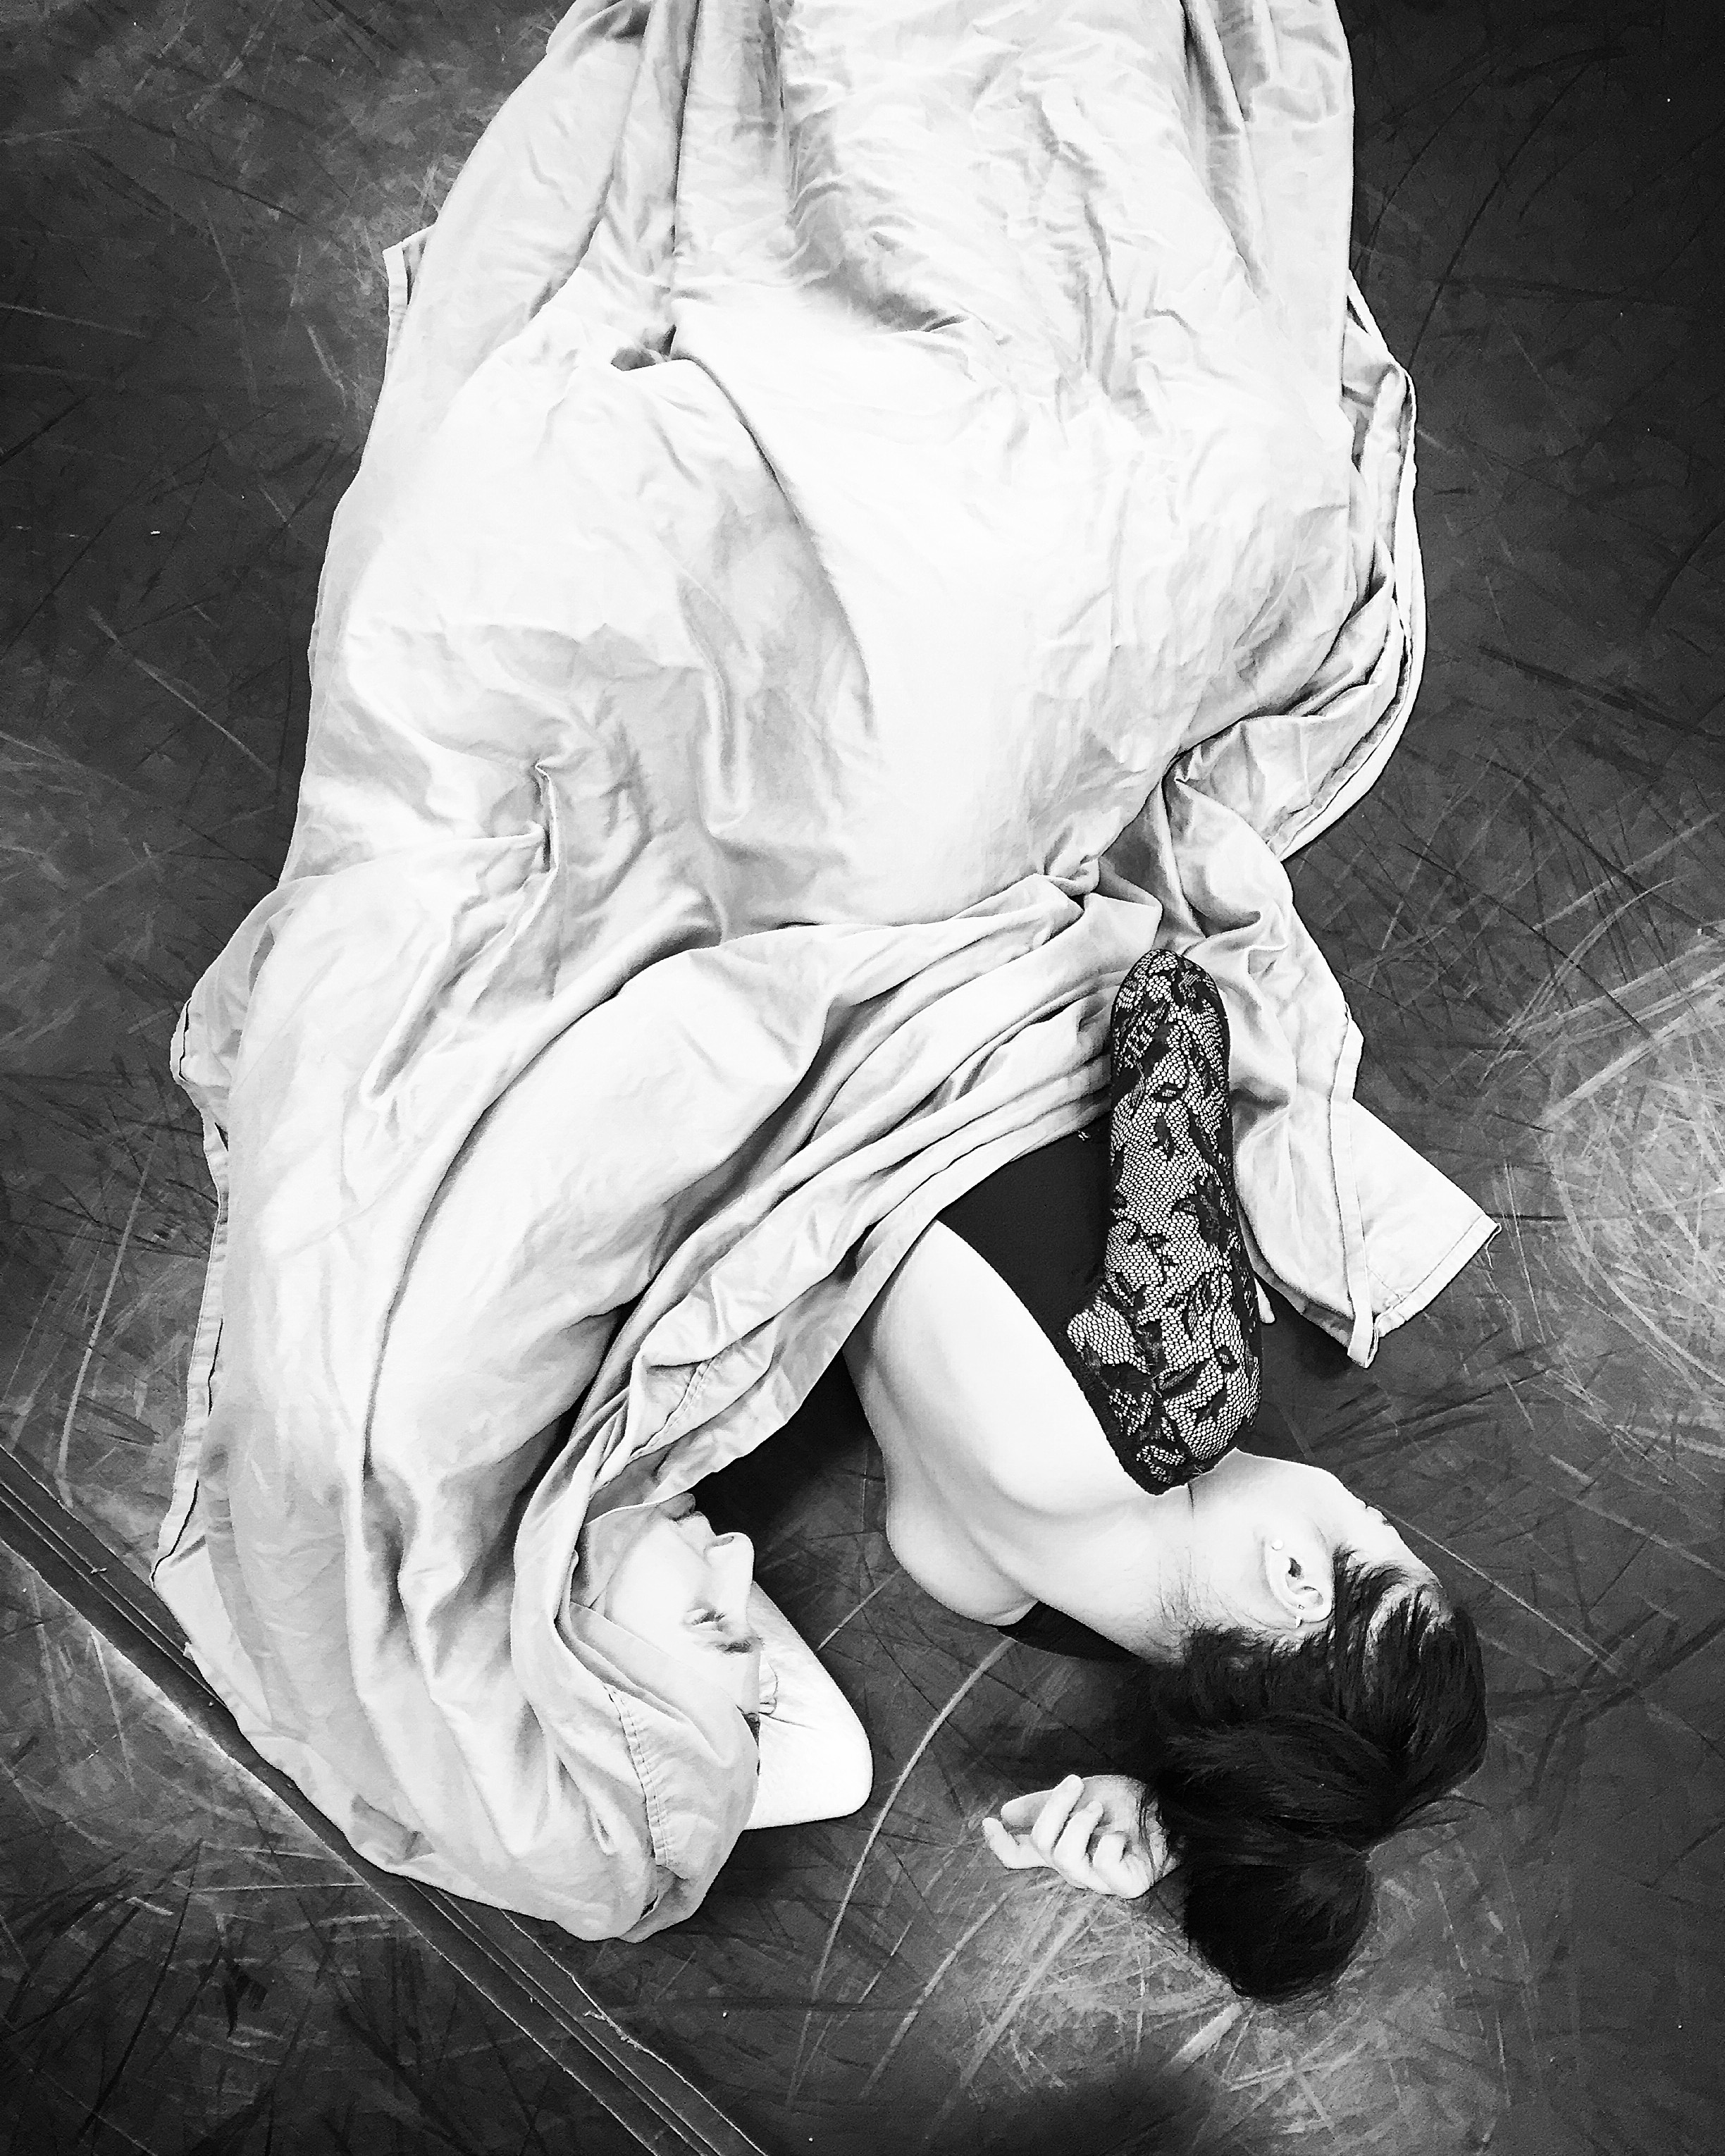 """""""Dreamers often lie,In bed asleep while they do dream things true."""" -Romeo and Juliet Act I, Scene 4 by William Shakespeare (Pictured, COB dancers Nathan Cook and Chessa Chalmers)"""